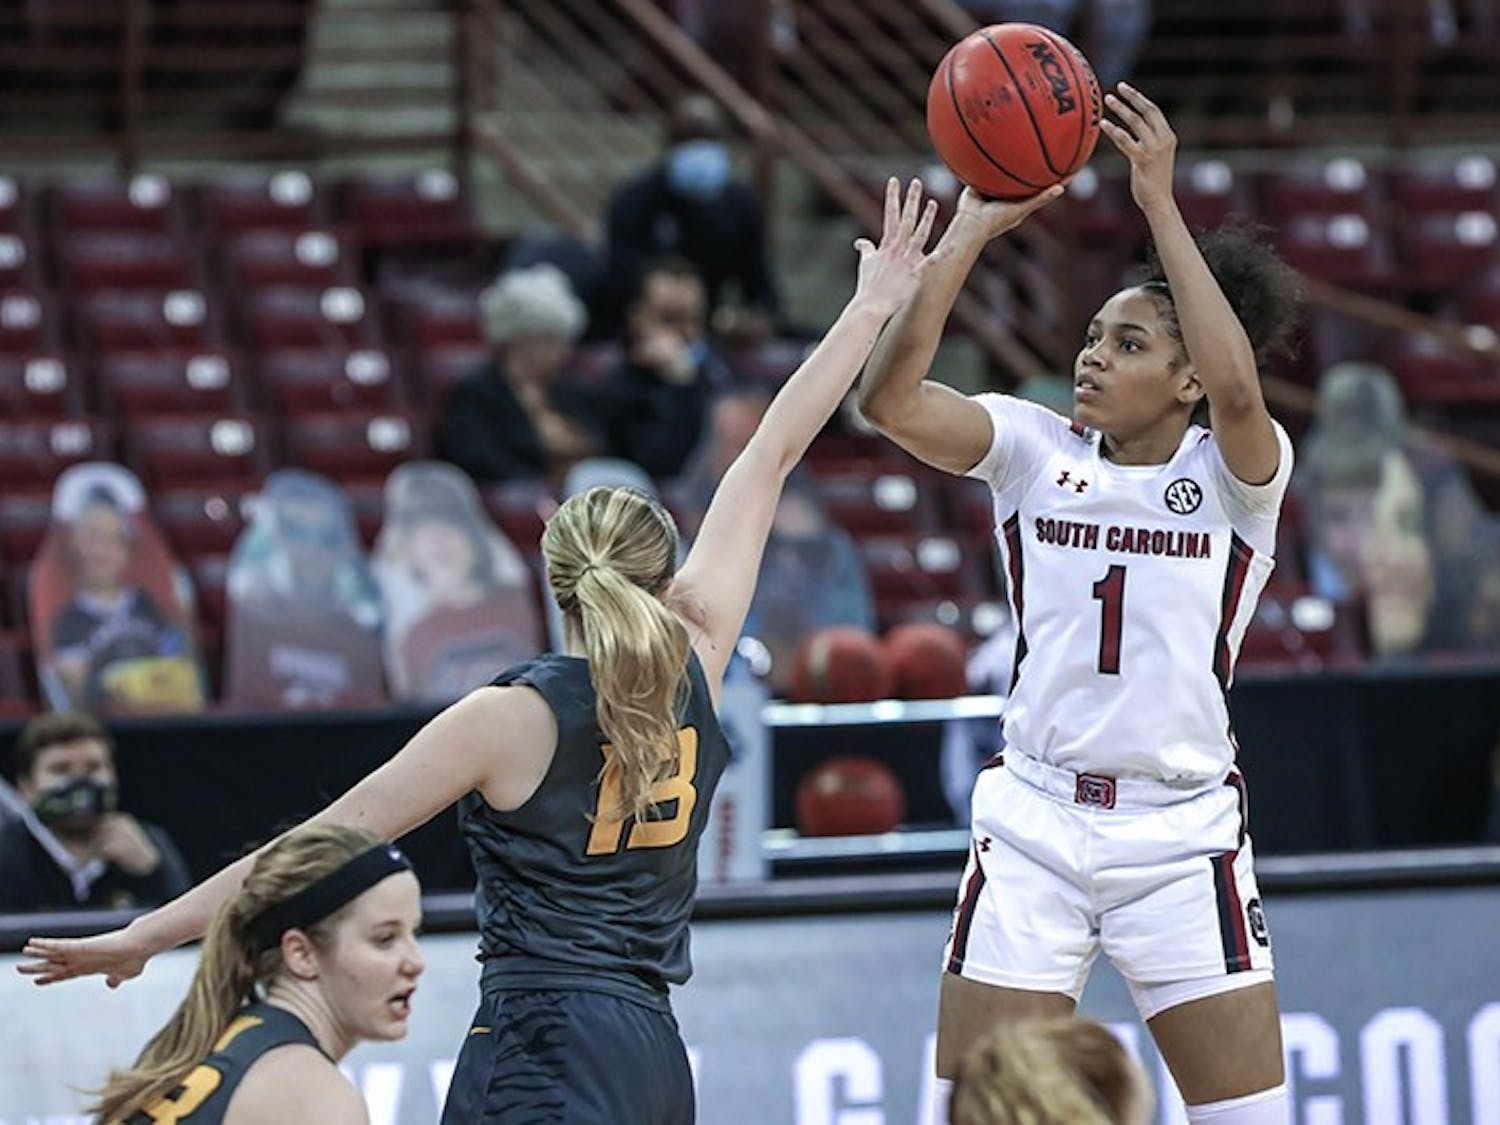 Sophomore guard Zia Cooke shoots over a defender in South Carolina's win over Missouri. The Gamecocks improved to 16-2 on the season following the win.